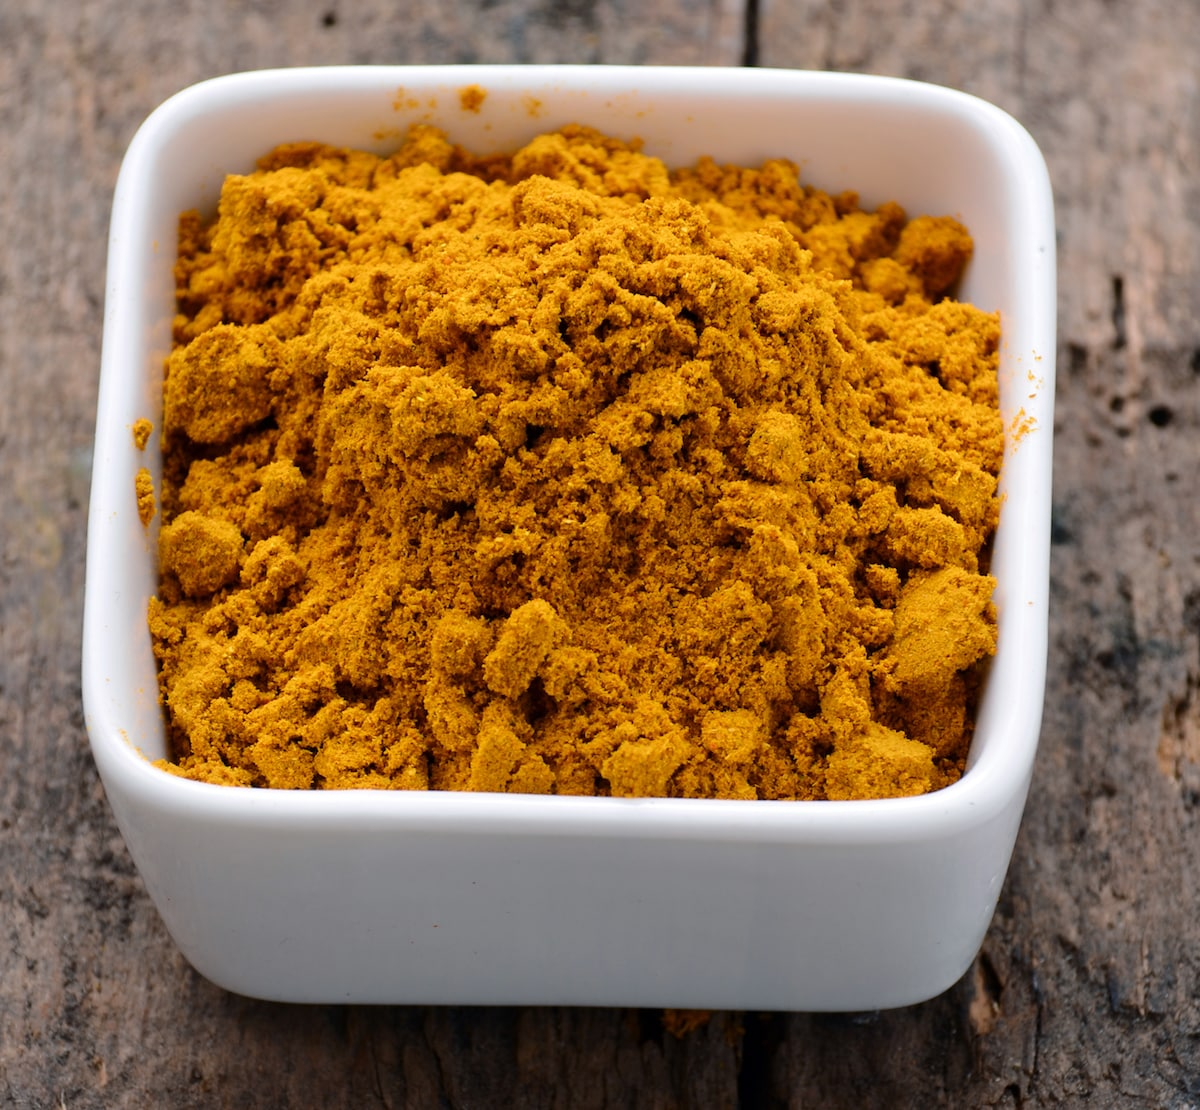 Fiery Jamaican Curry Powder